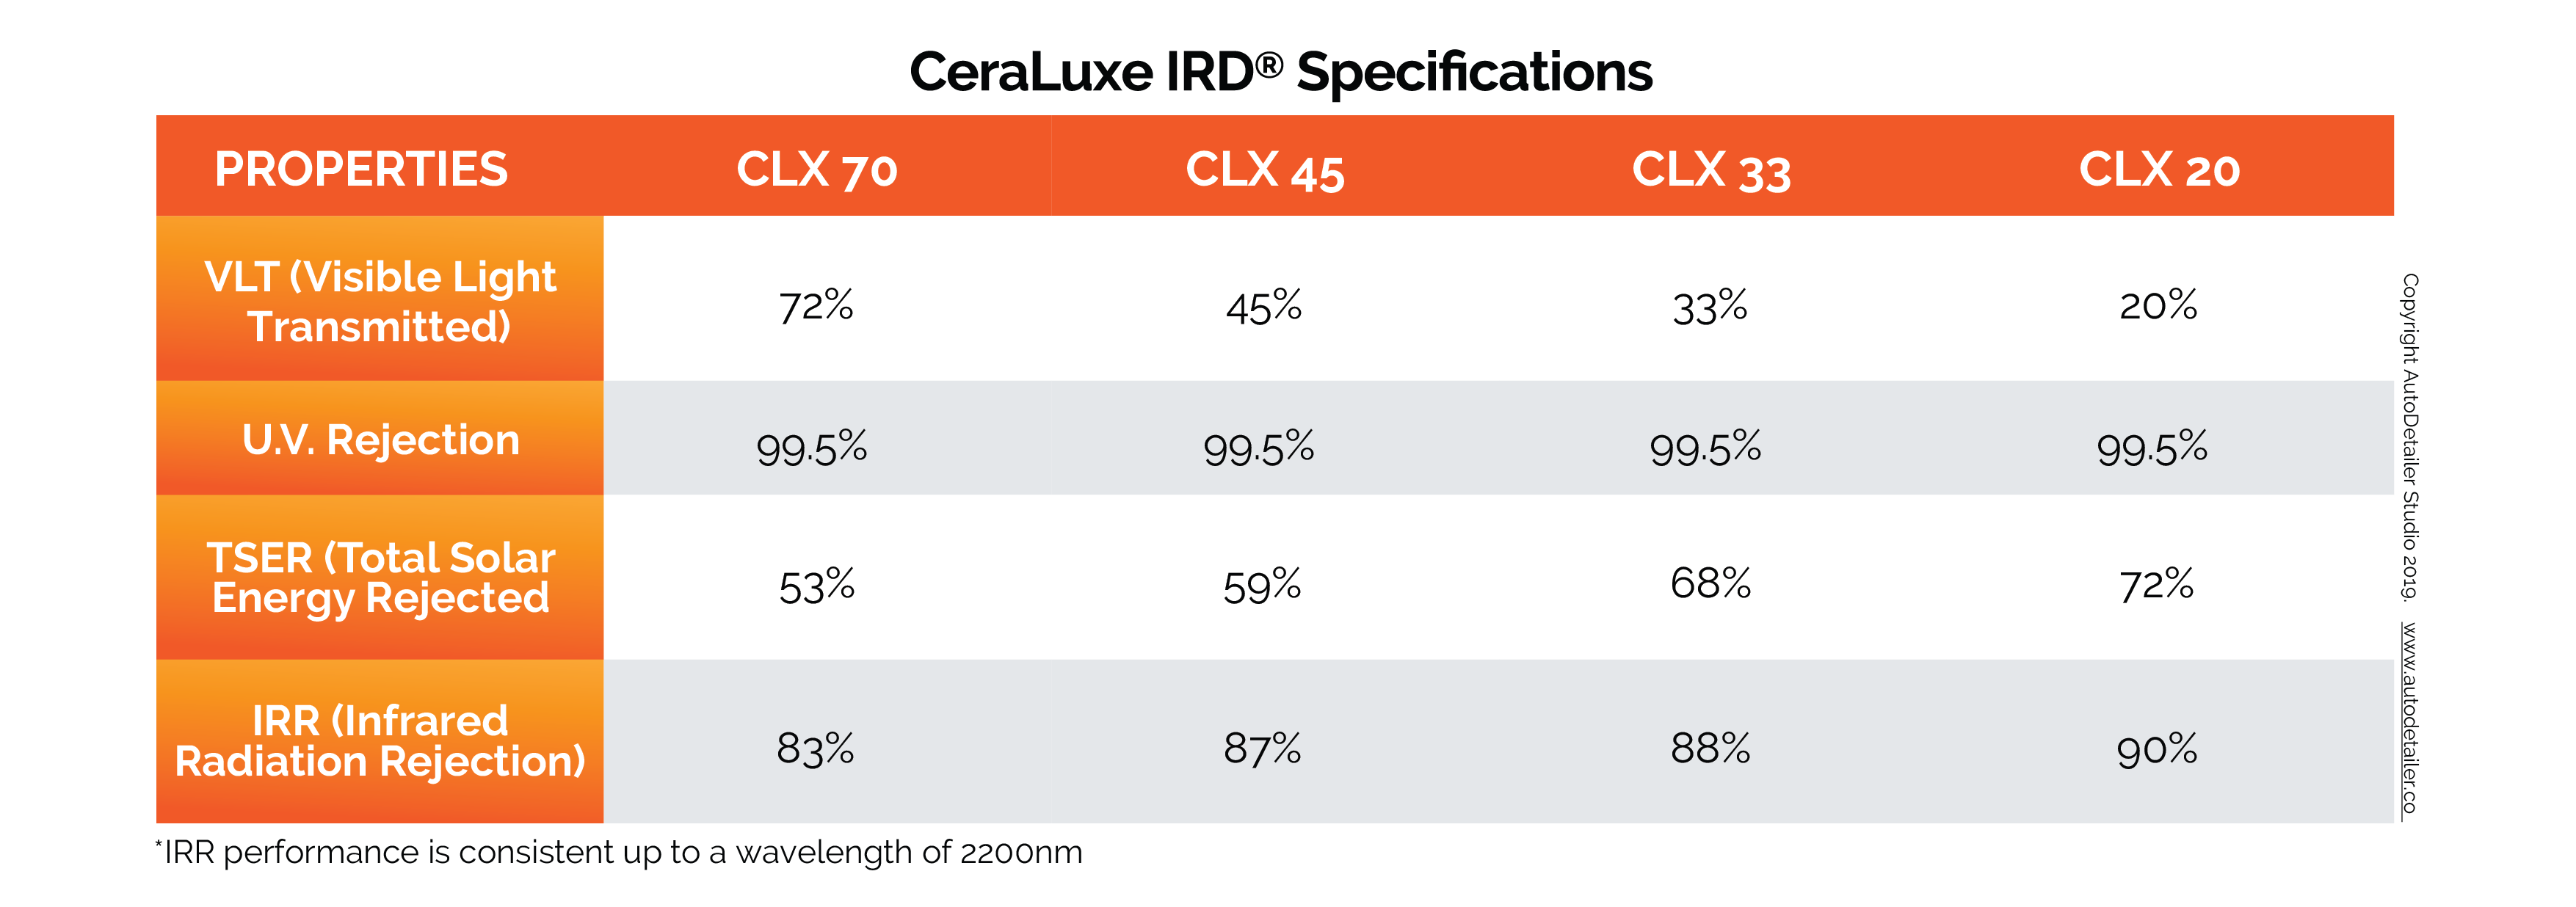 CLX Specifications Table